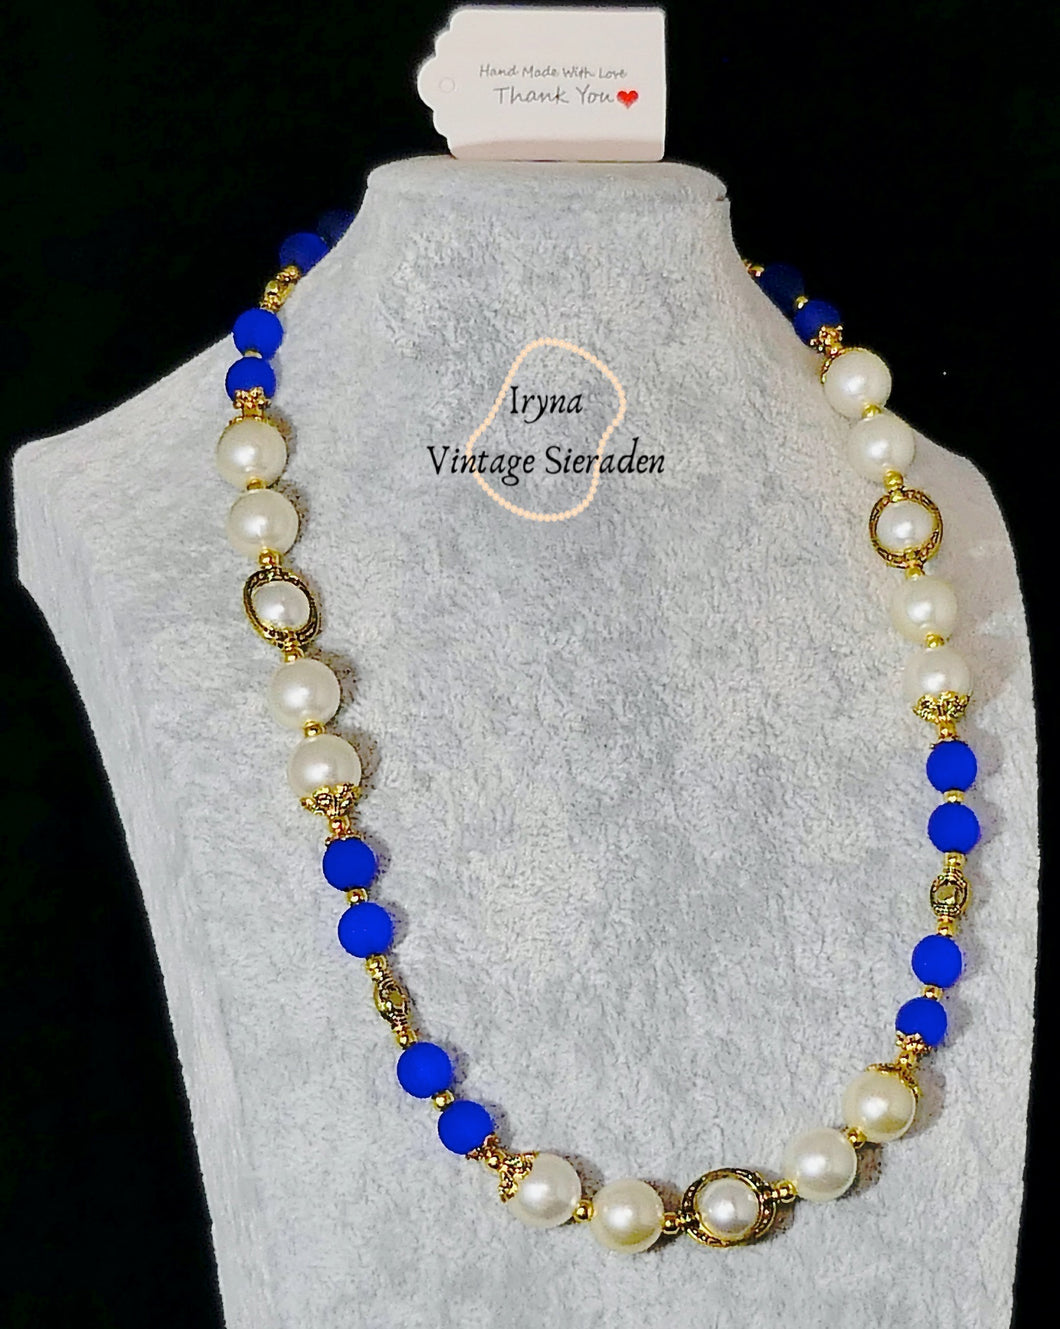 Necklace with Pearls and Gemstones